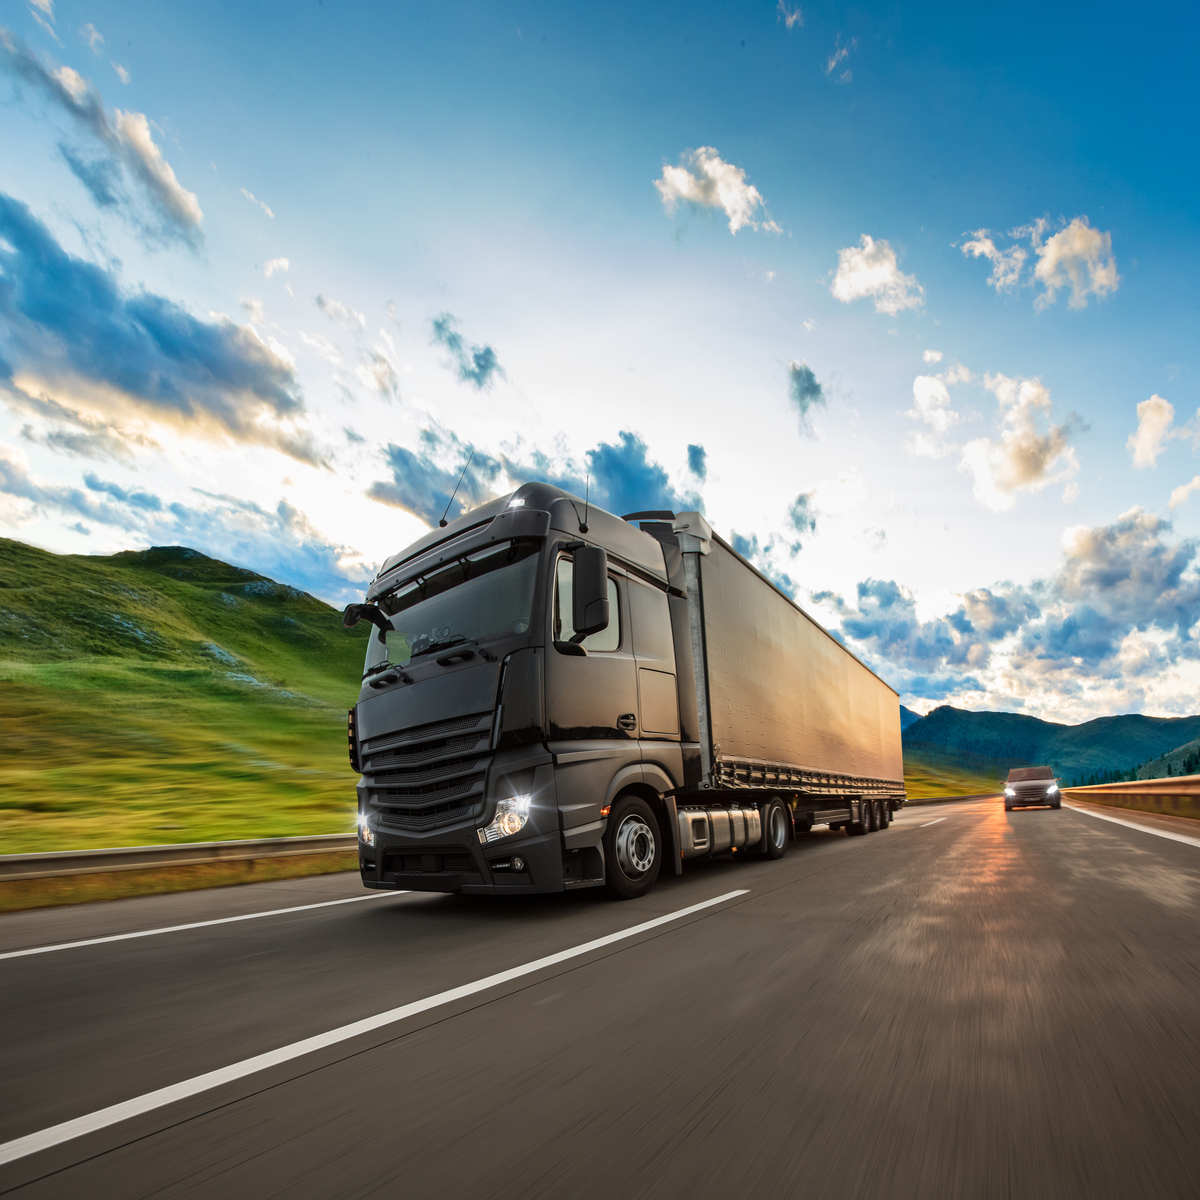 How Do I Find Truck Title Loans Near Me?